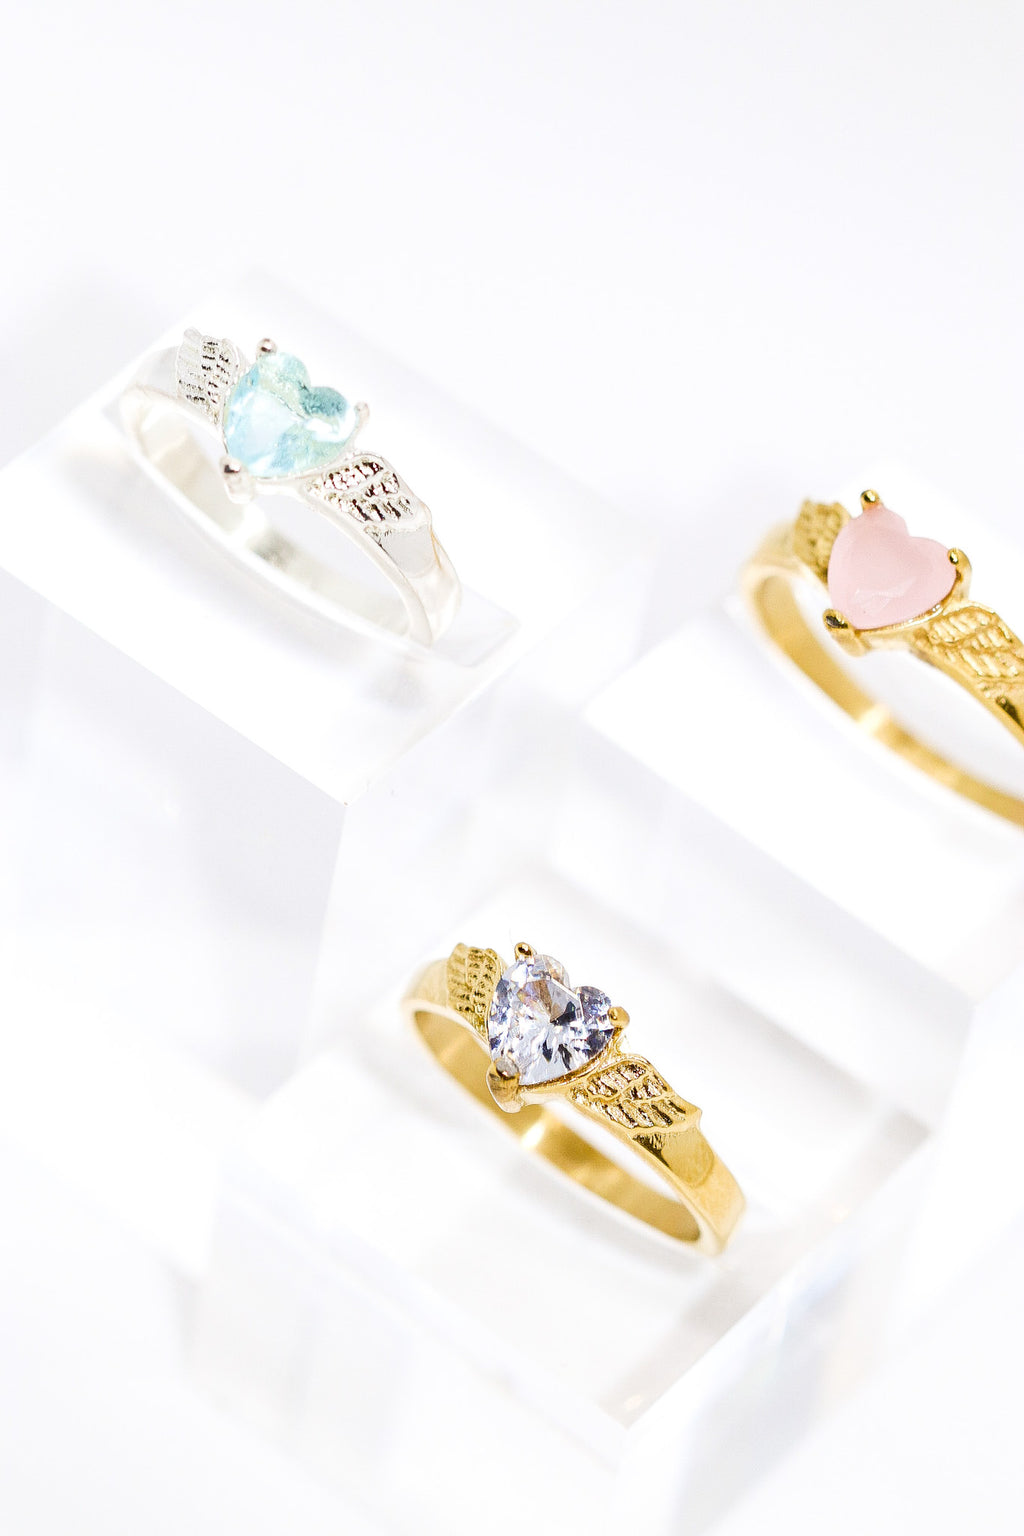 MERE RING - Taimana Boutique